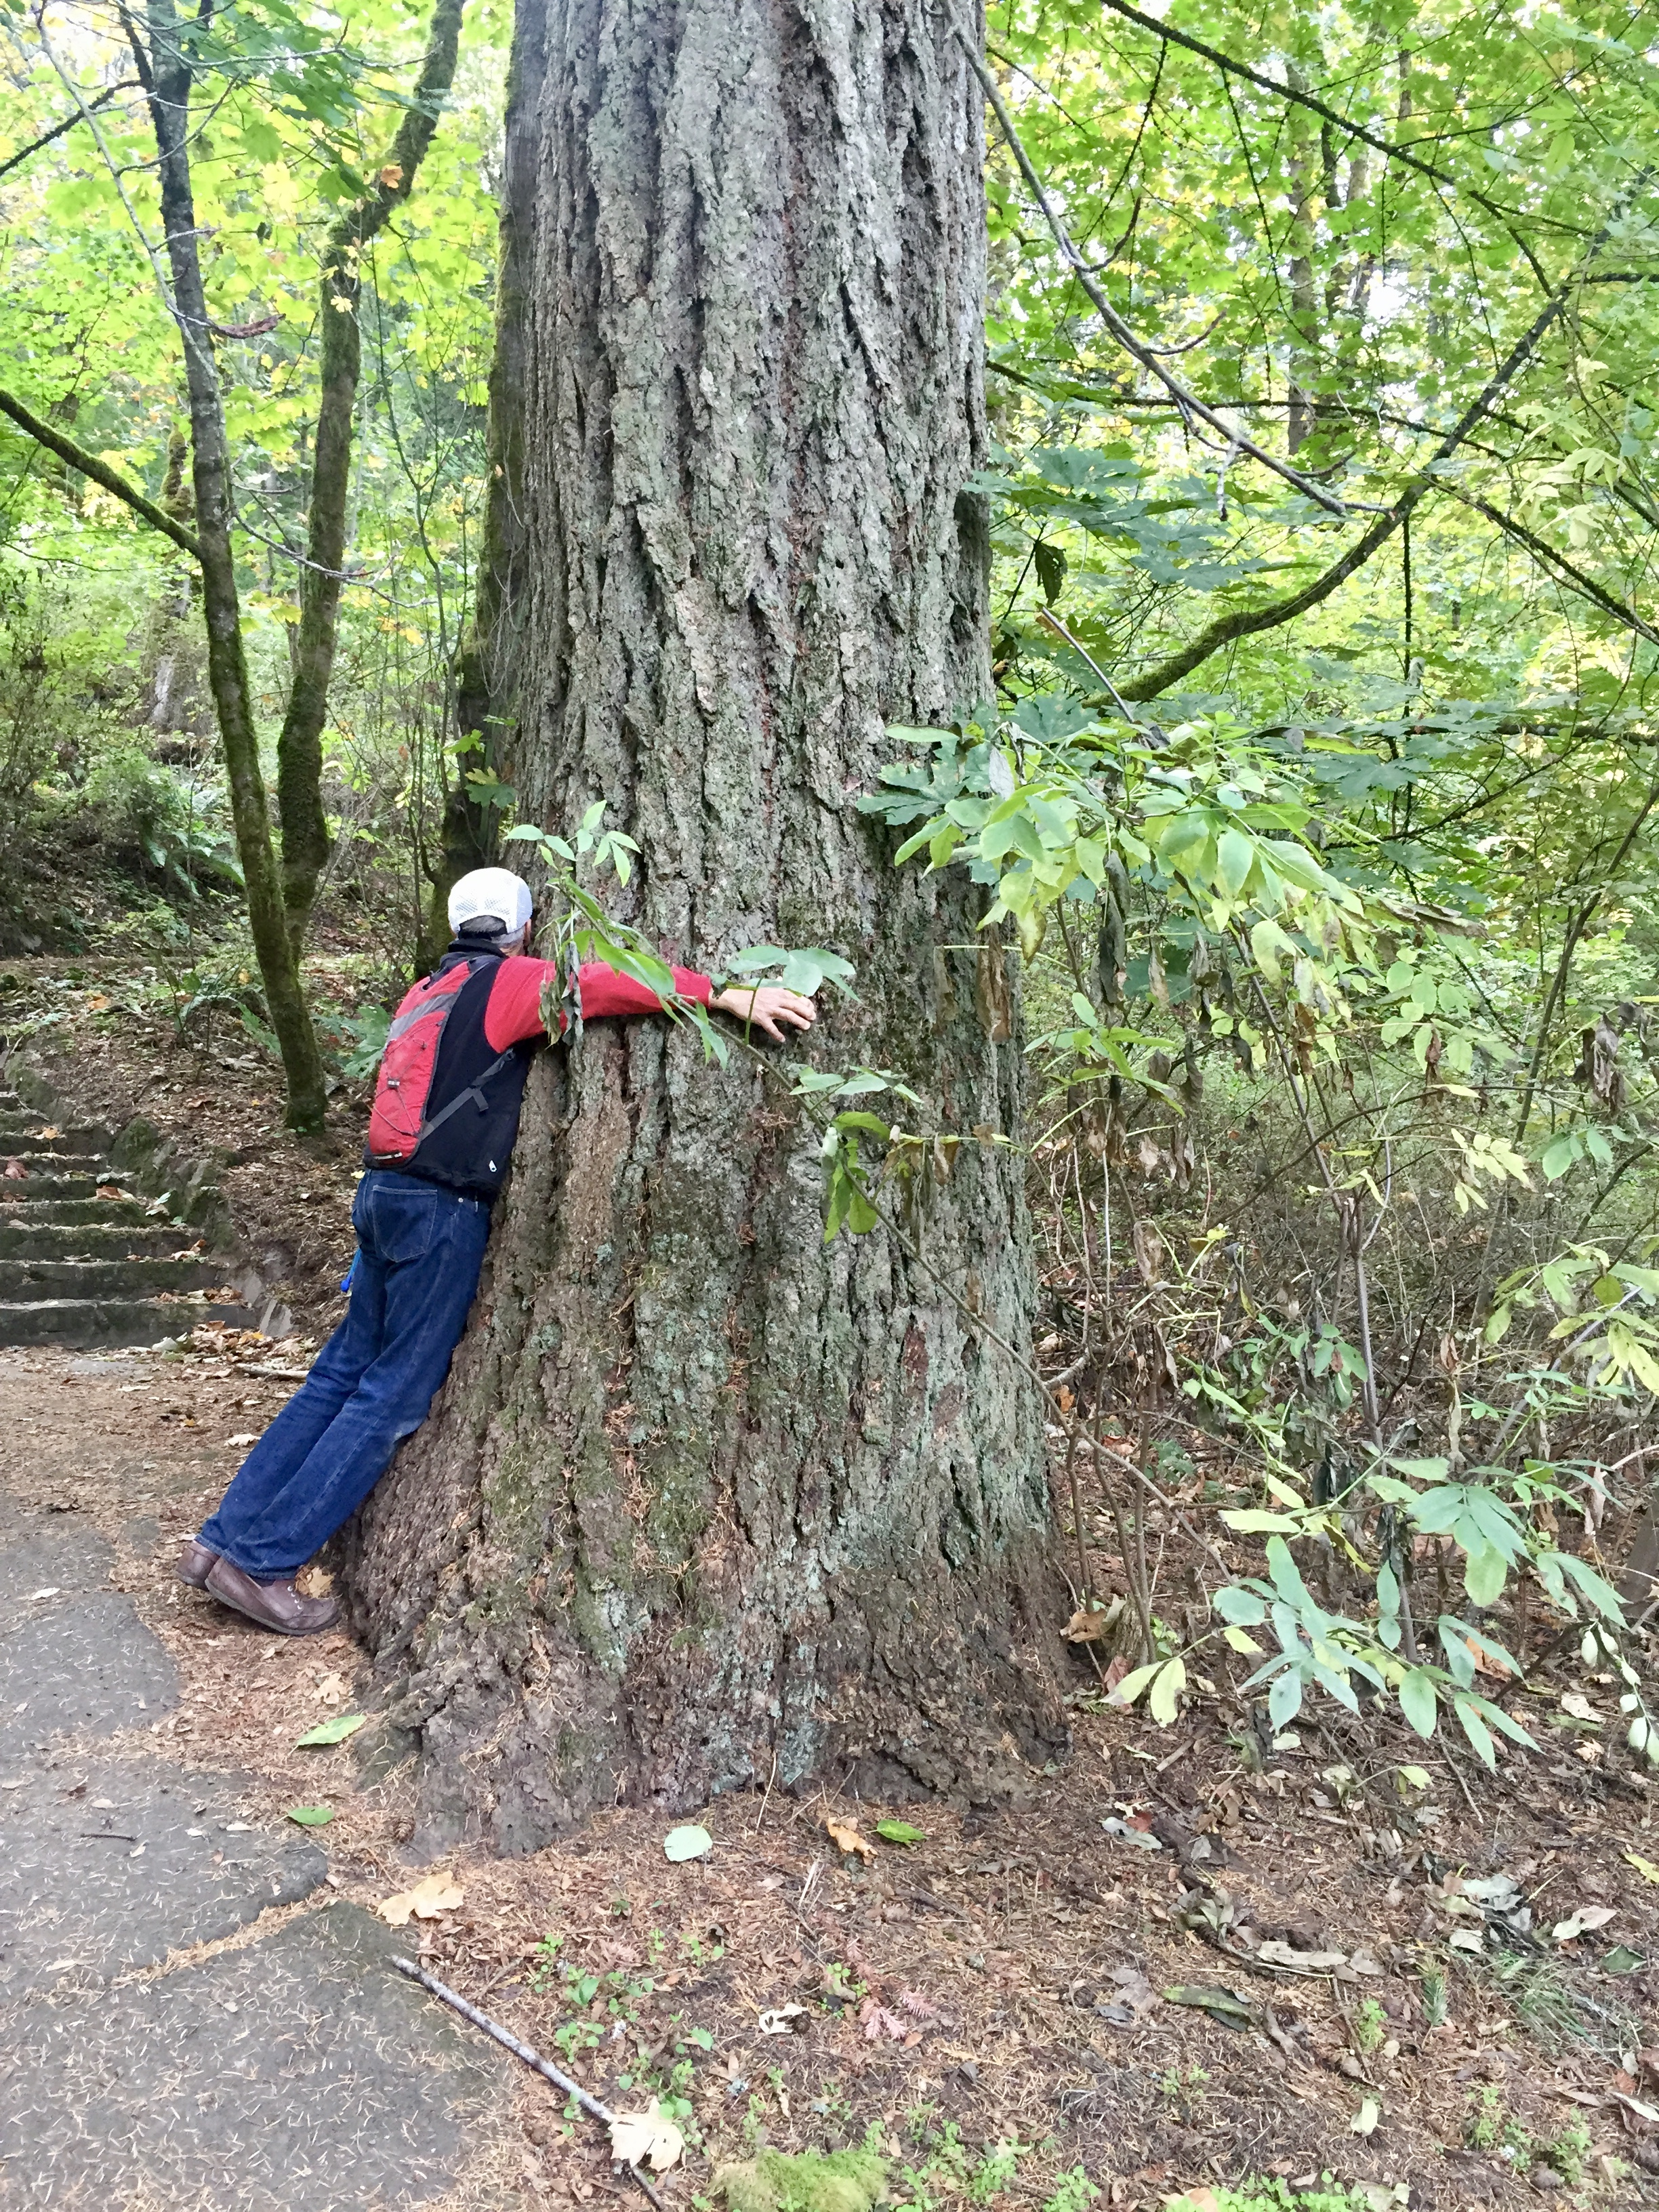 My dad made time to stop and hug trees, to feel their bark under his fingers.